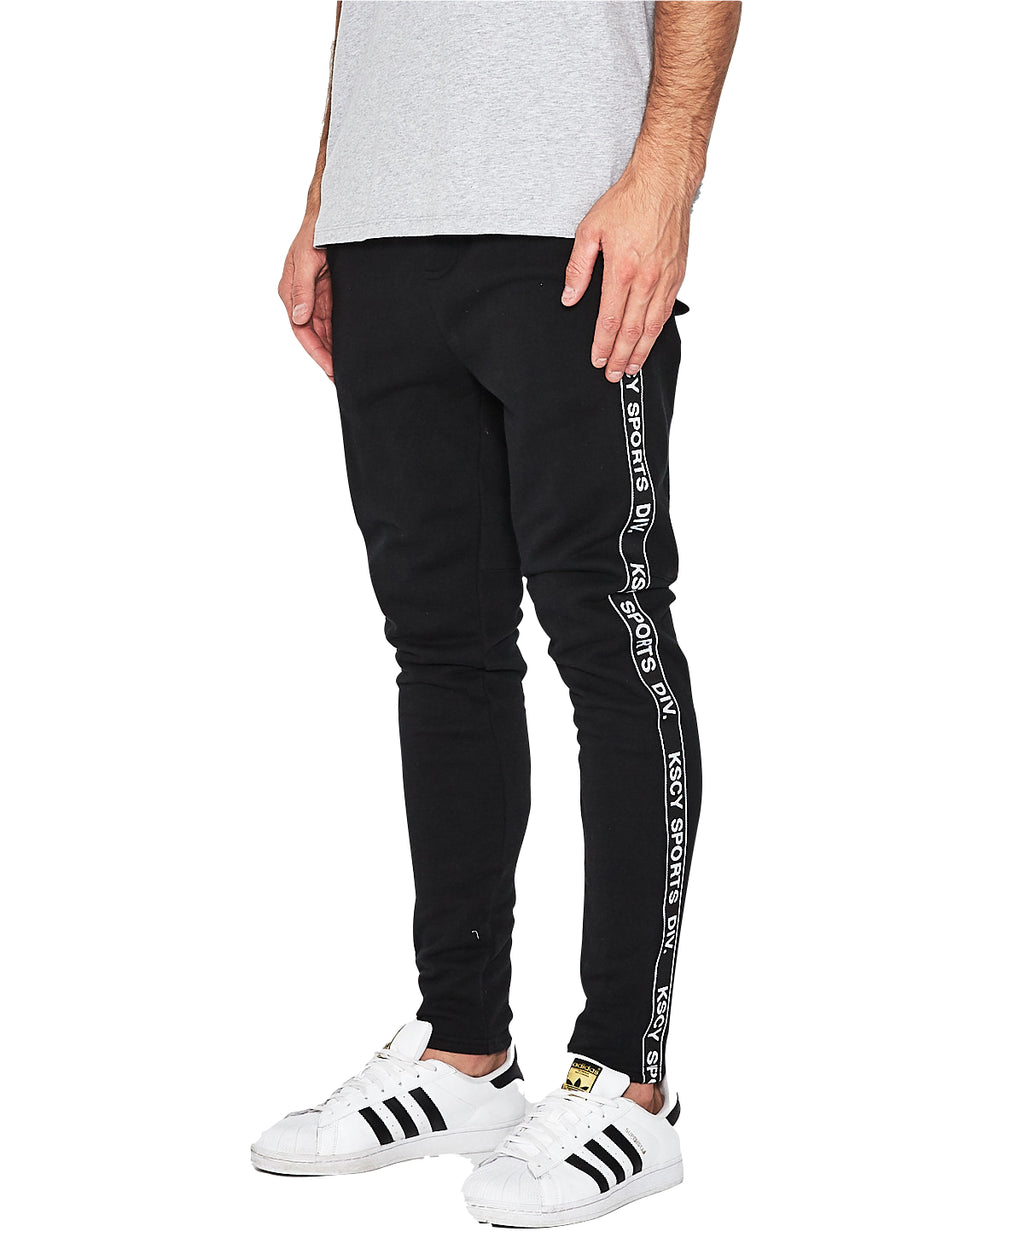 Kiss Chacey - Back Court Elasticated Trackpant - Jet Black